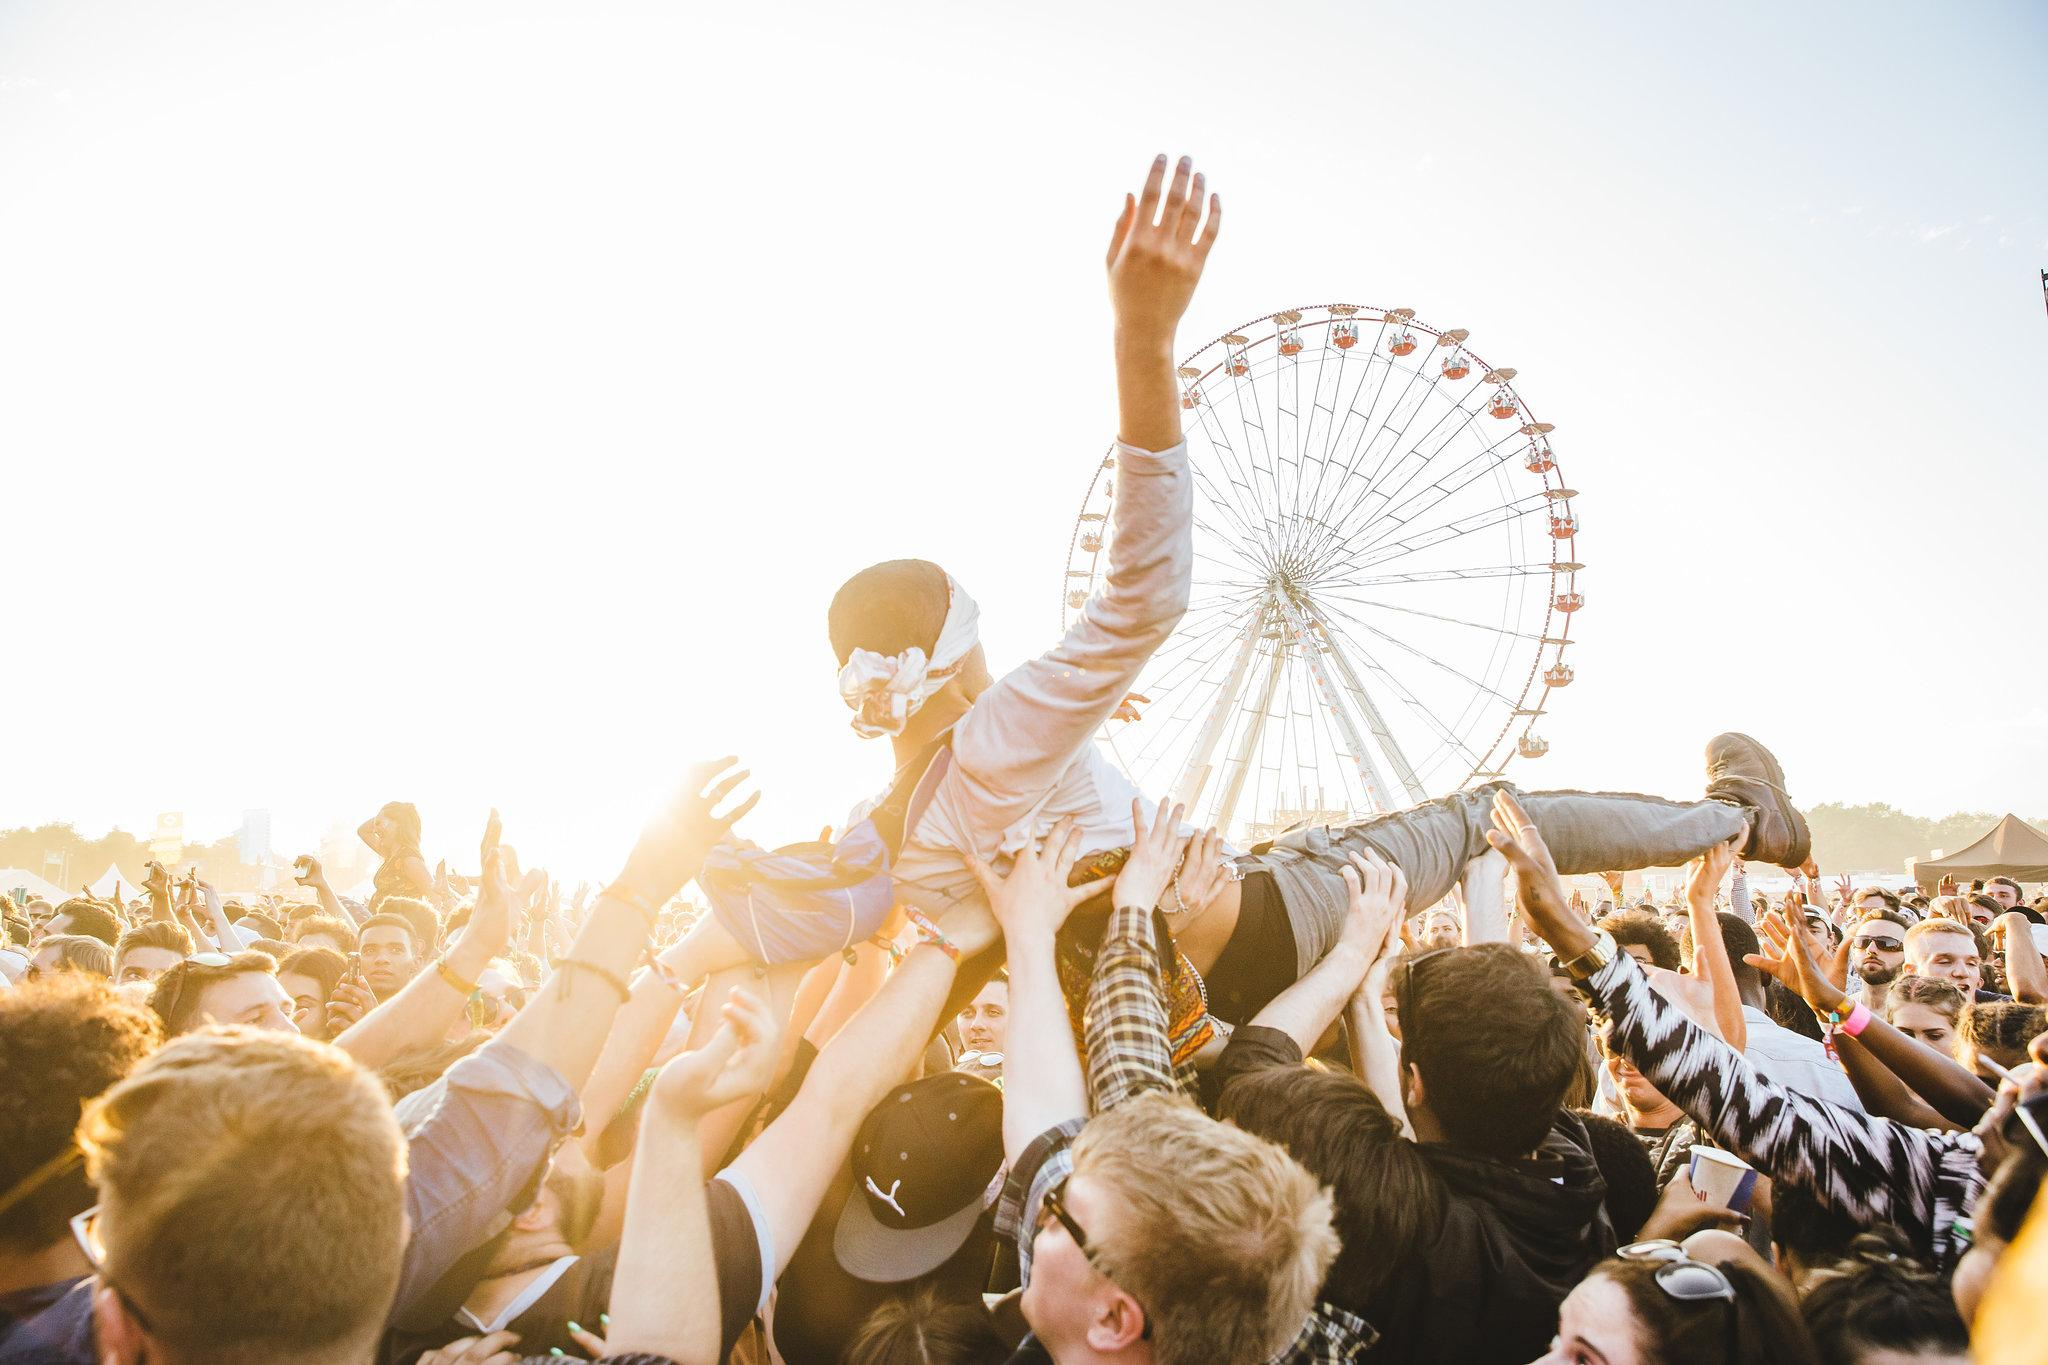 Victorious Festival news: Every UK music festival fans can